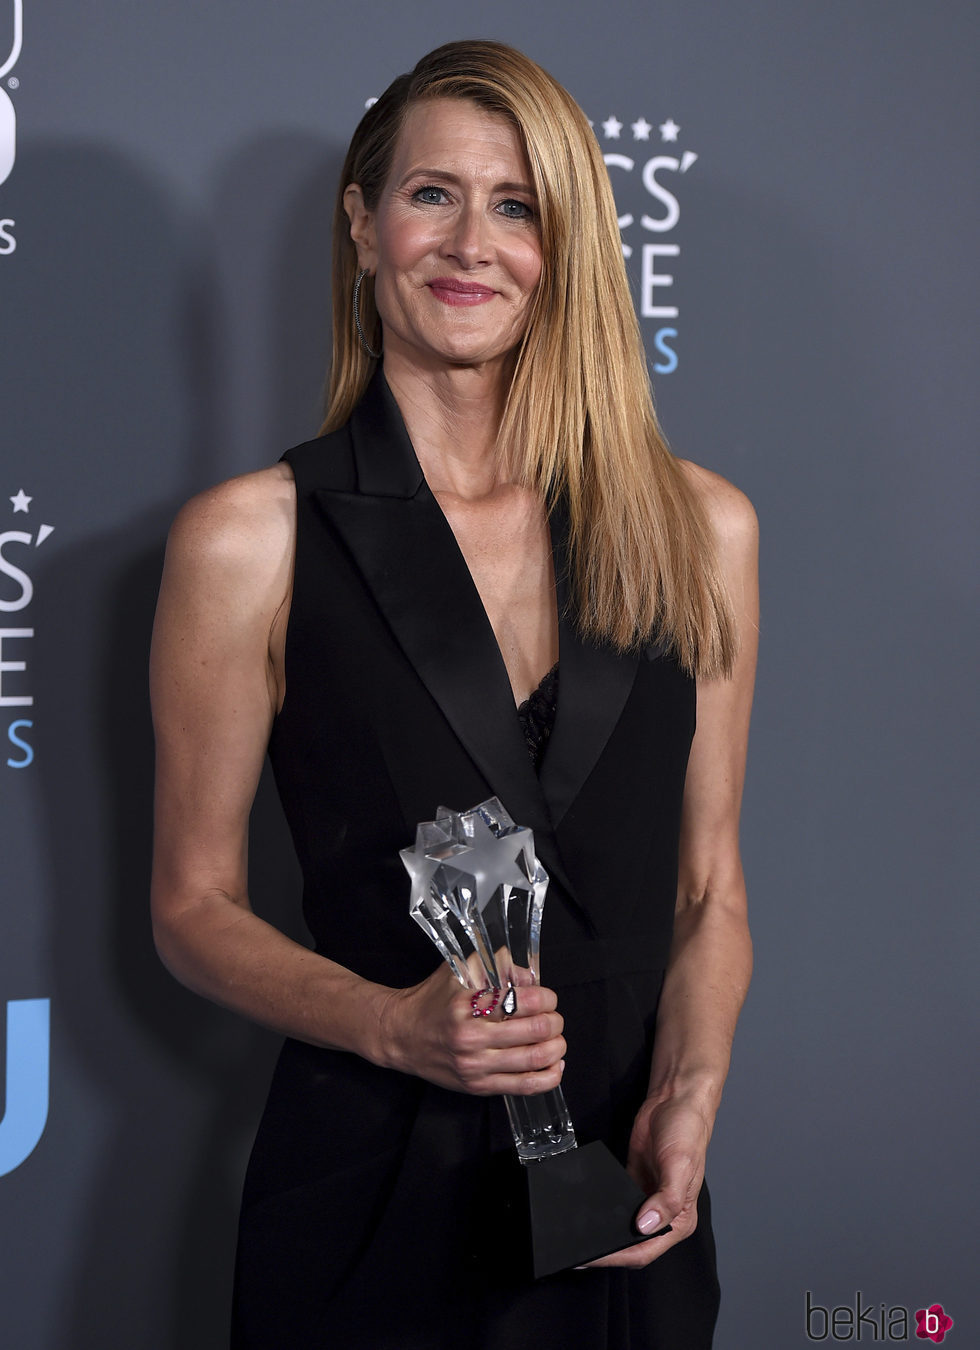 Laura Dern con su premio en los Critics' Choice Awards 2018